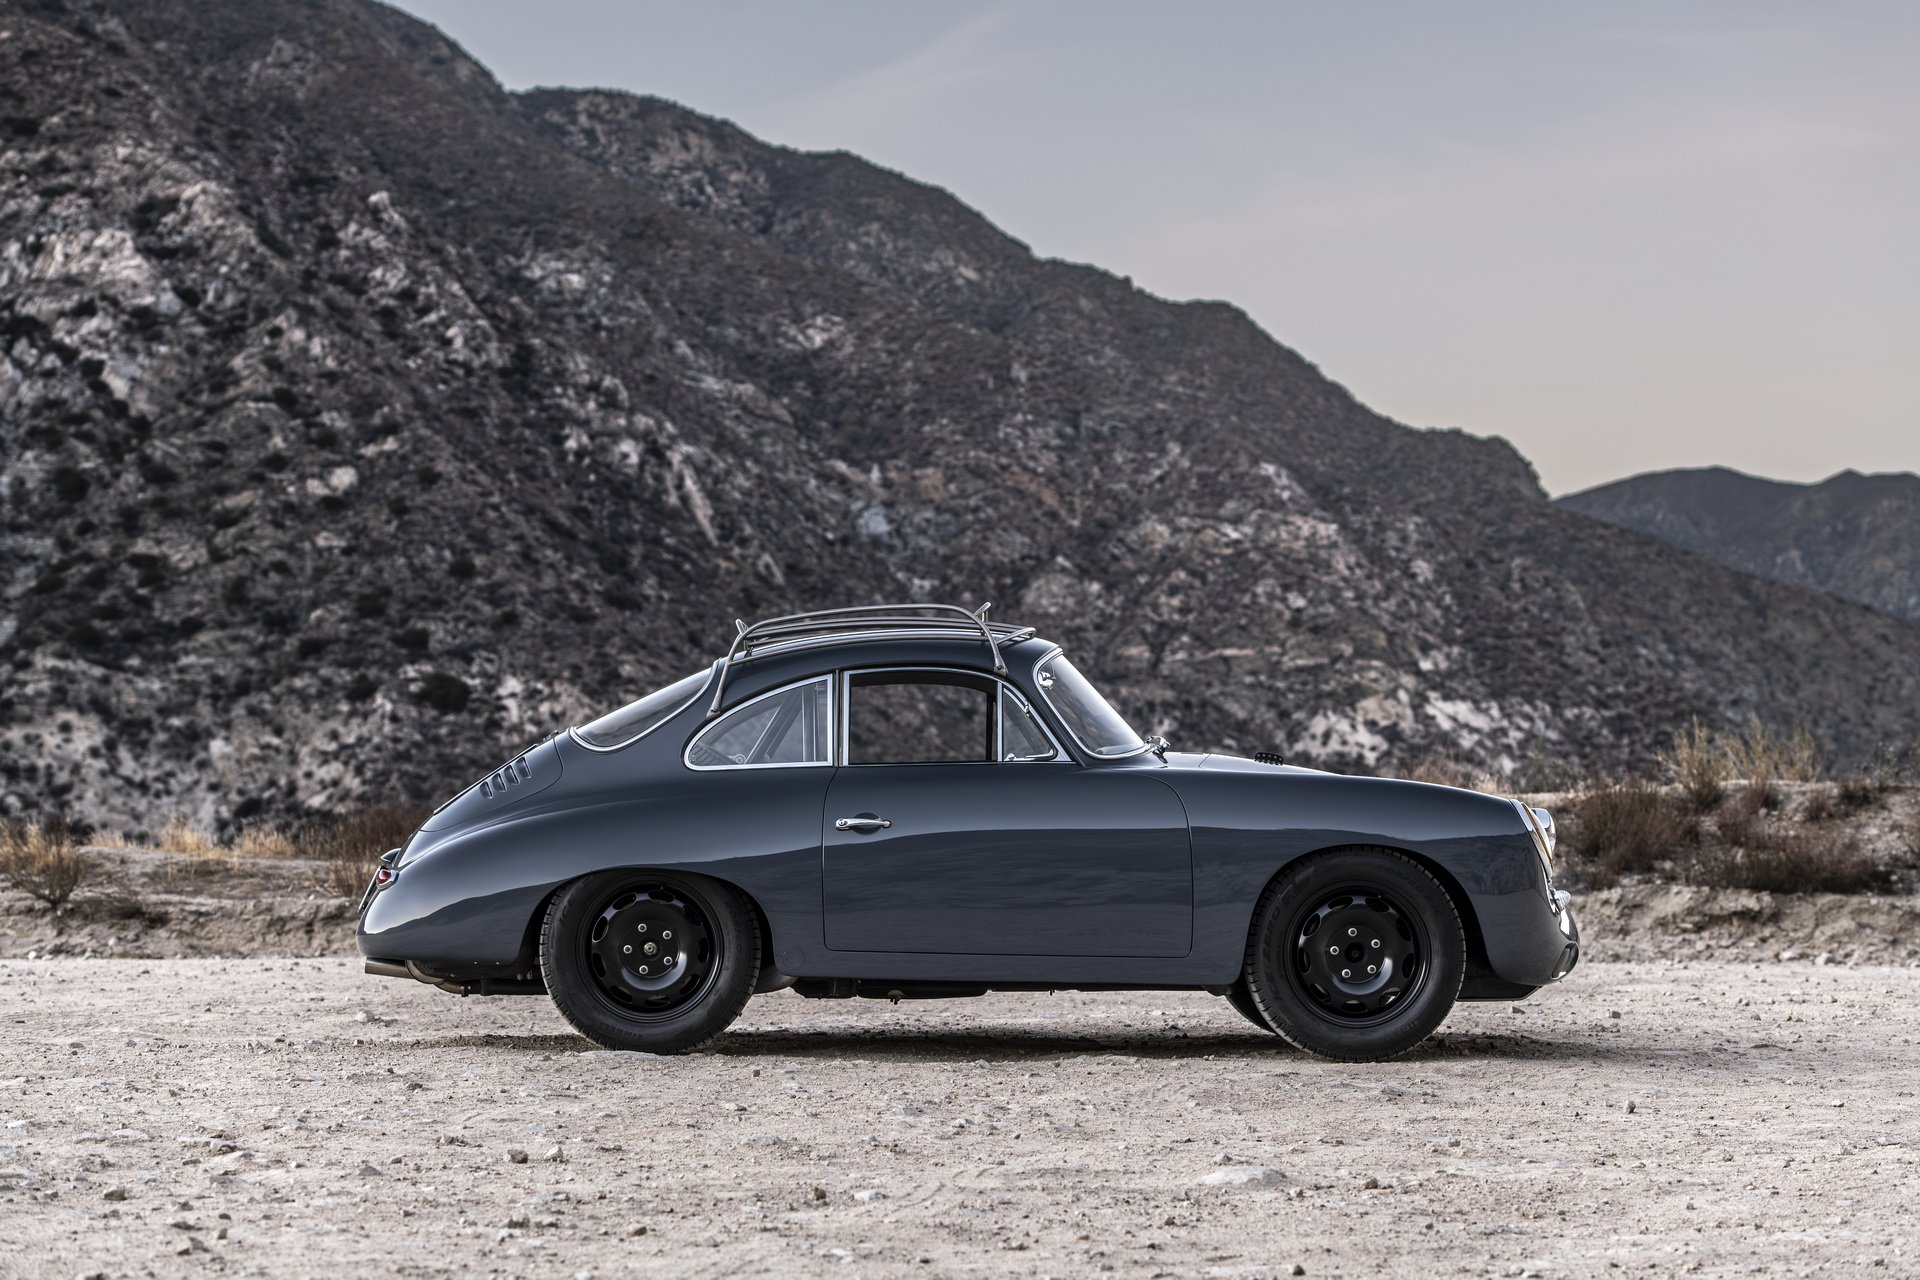 AWD Porsche 356 Coupe by Emory Motorsports (64)